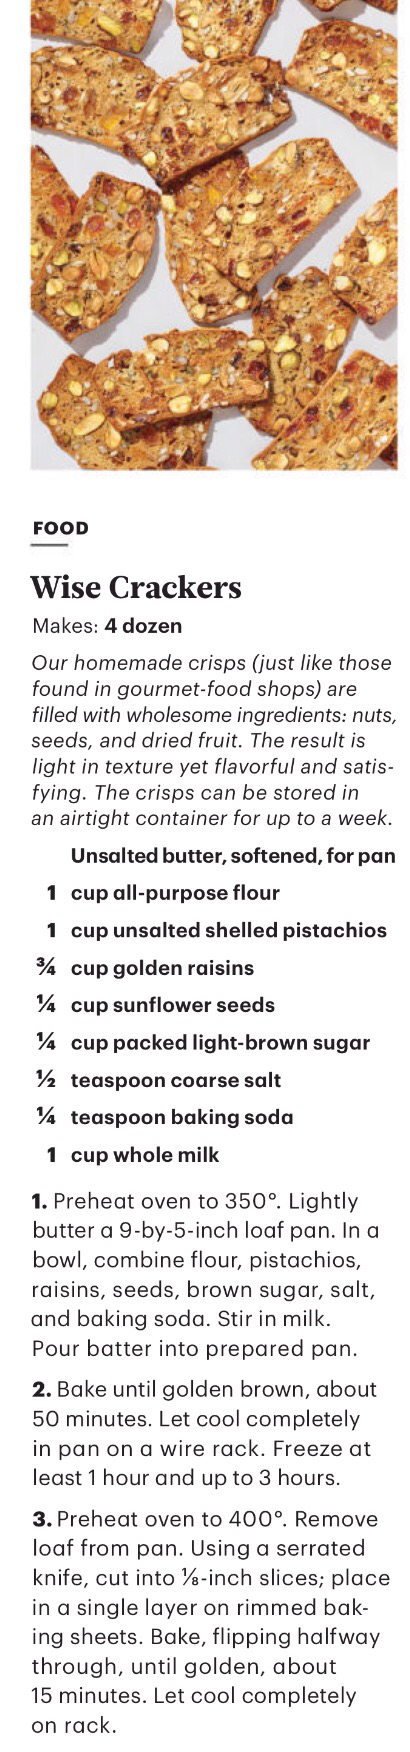 Wise Crackers From Martha Stewart Living March 2016